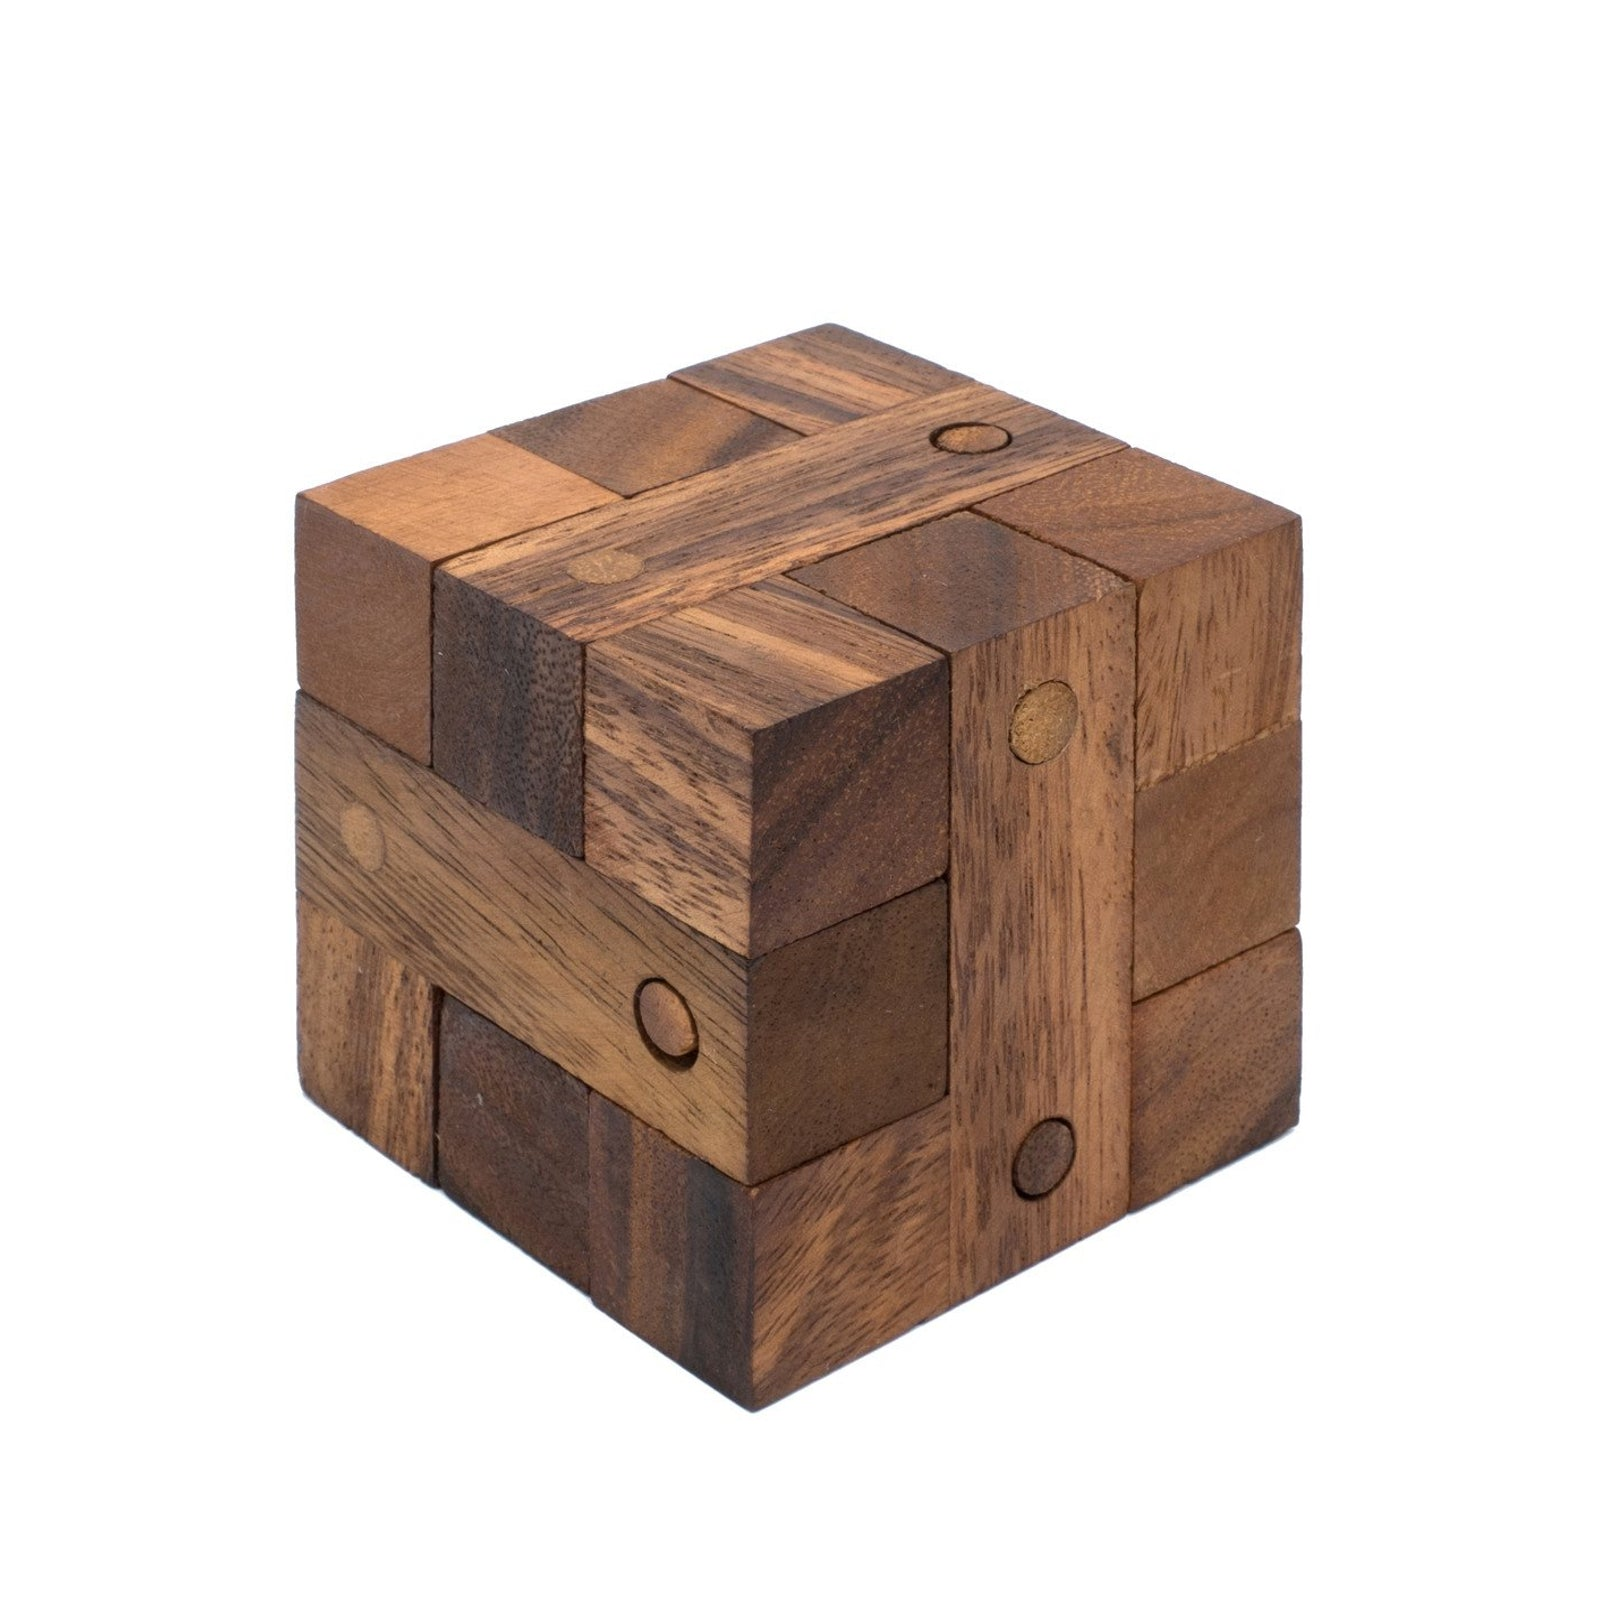 Wooden Puzzles 3d Brainteasers For Adults Lifetime Guarantee